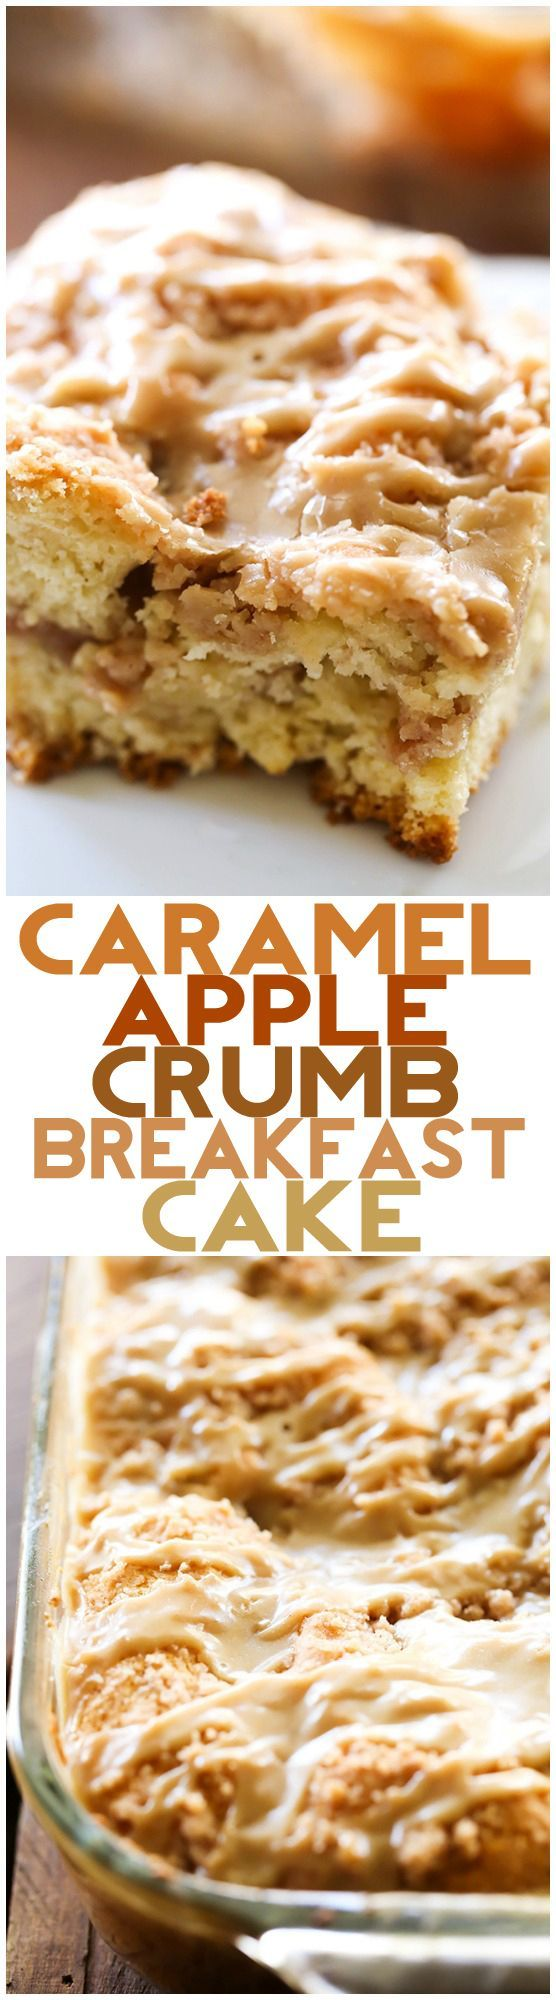 Caramel Apple Crumb Breakfast Cake - This recipe is absolutely DELICIOUS! Apple cake with crumb mixture swirled both in the center and over the top and drizzled in the most amazing caramel glaze!